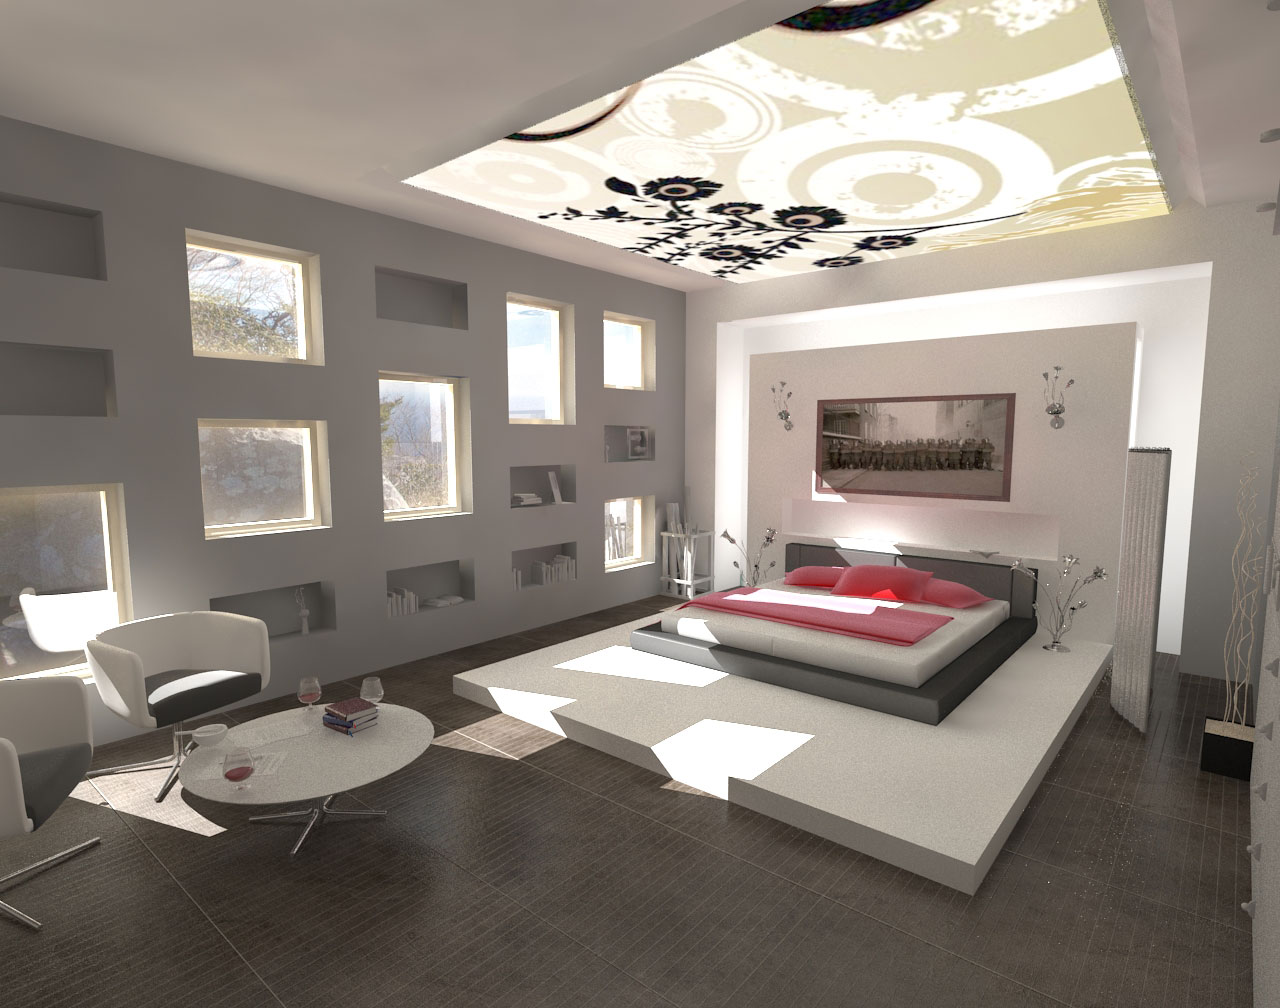 Decorations minimalist design modern bedroom interior for Interior design ideas for bedroom